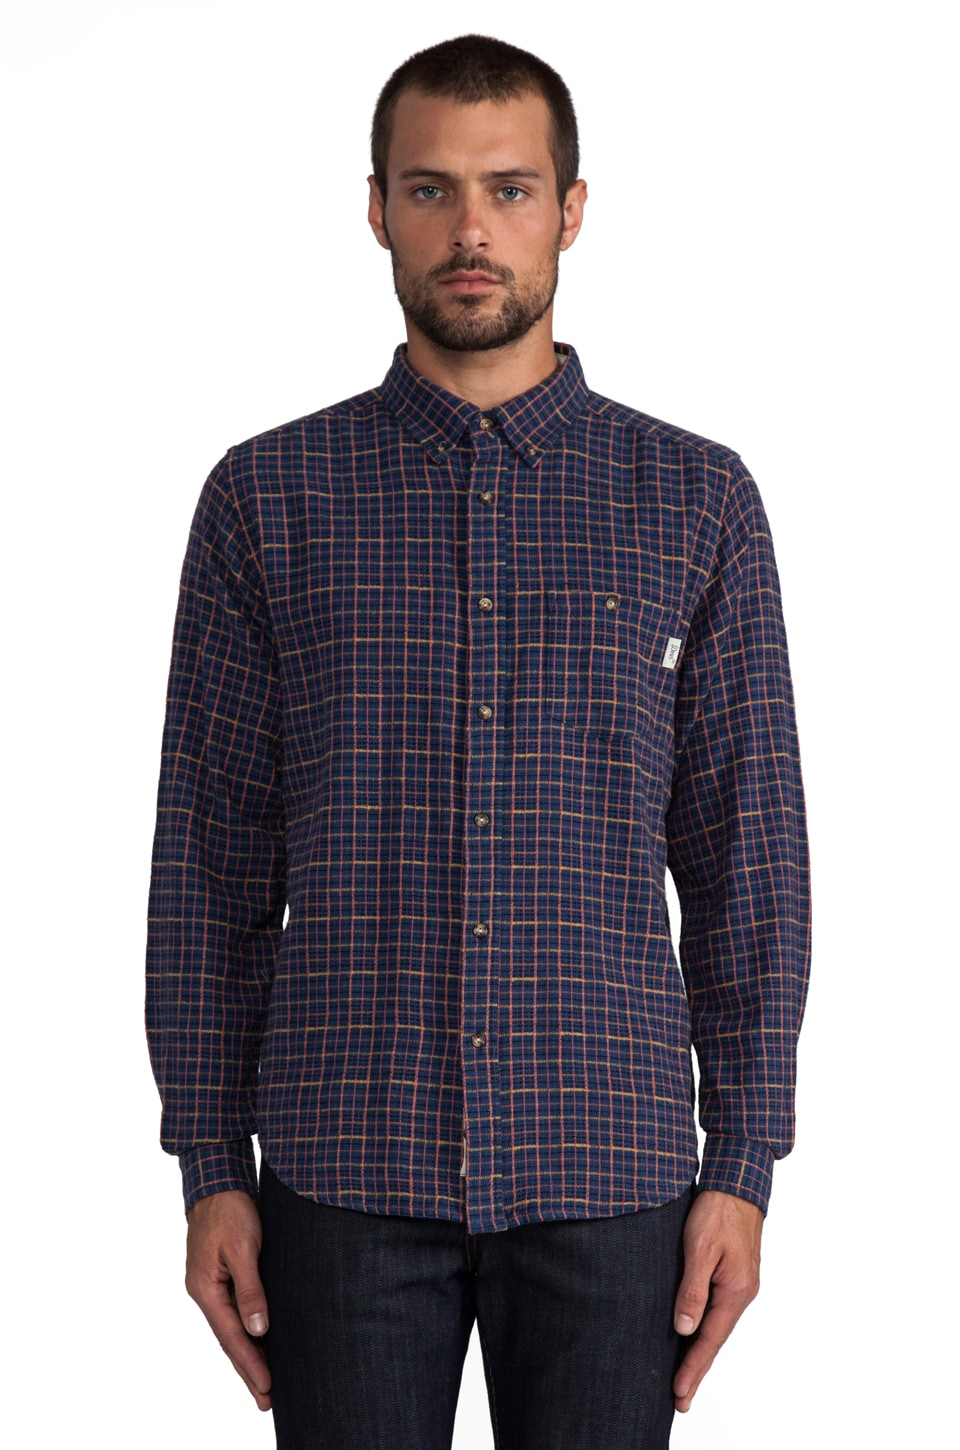 Deus Ex Machina Mixed Lollies Shirt in Black/Blue Steel